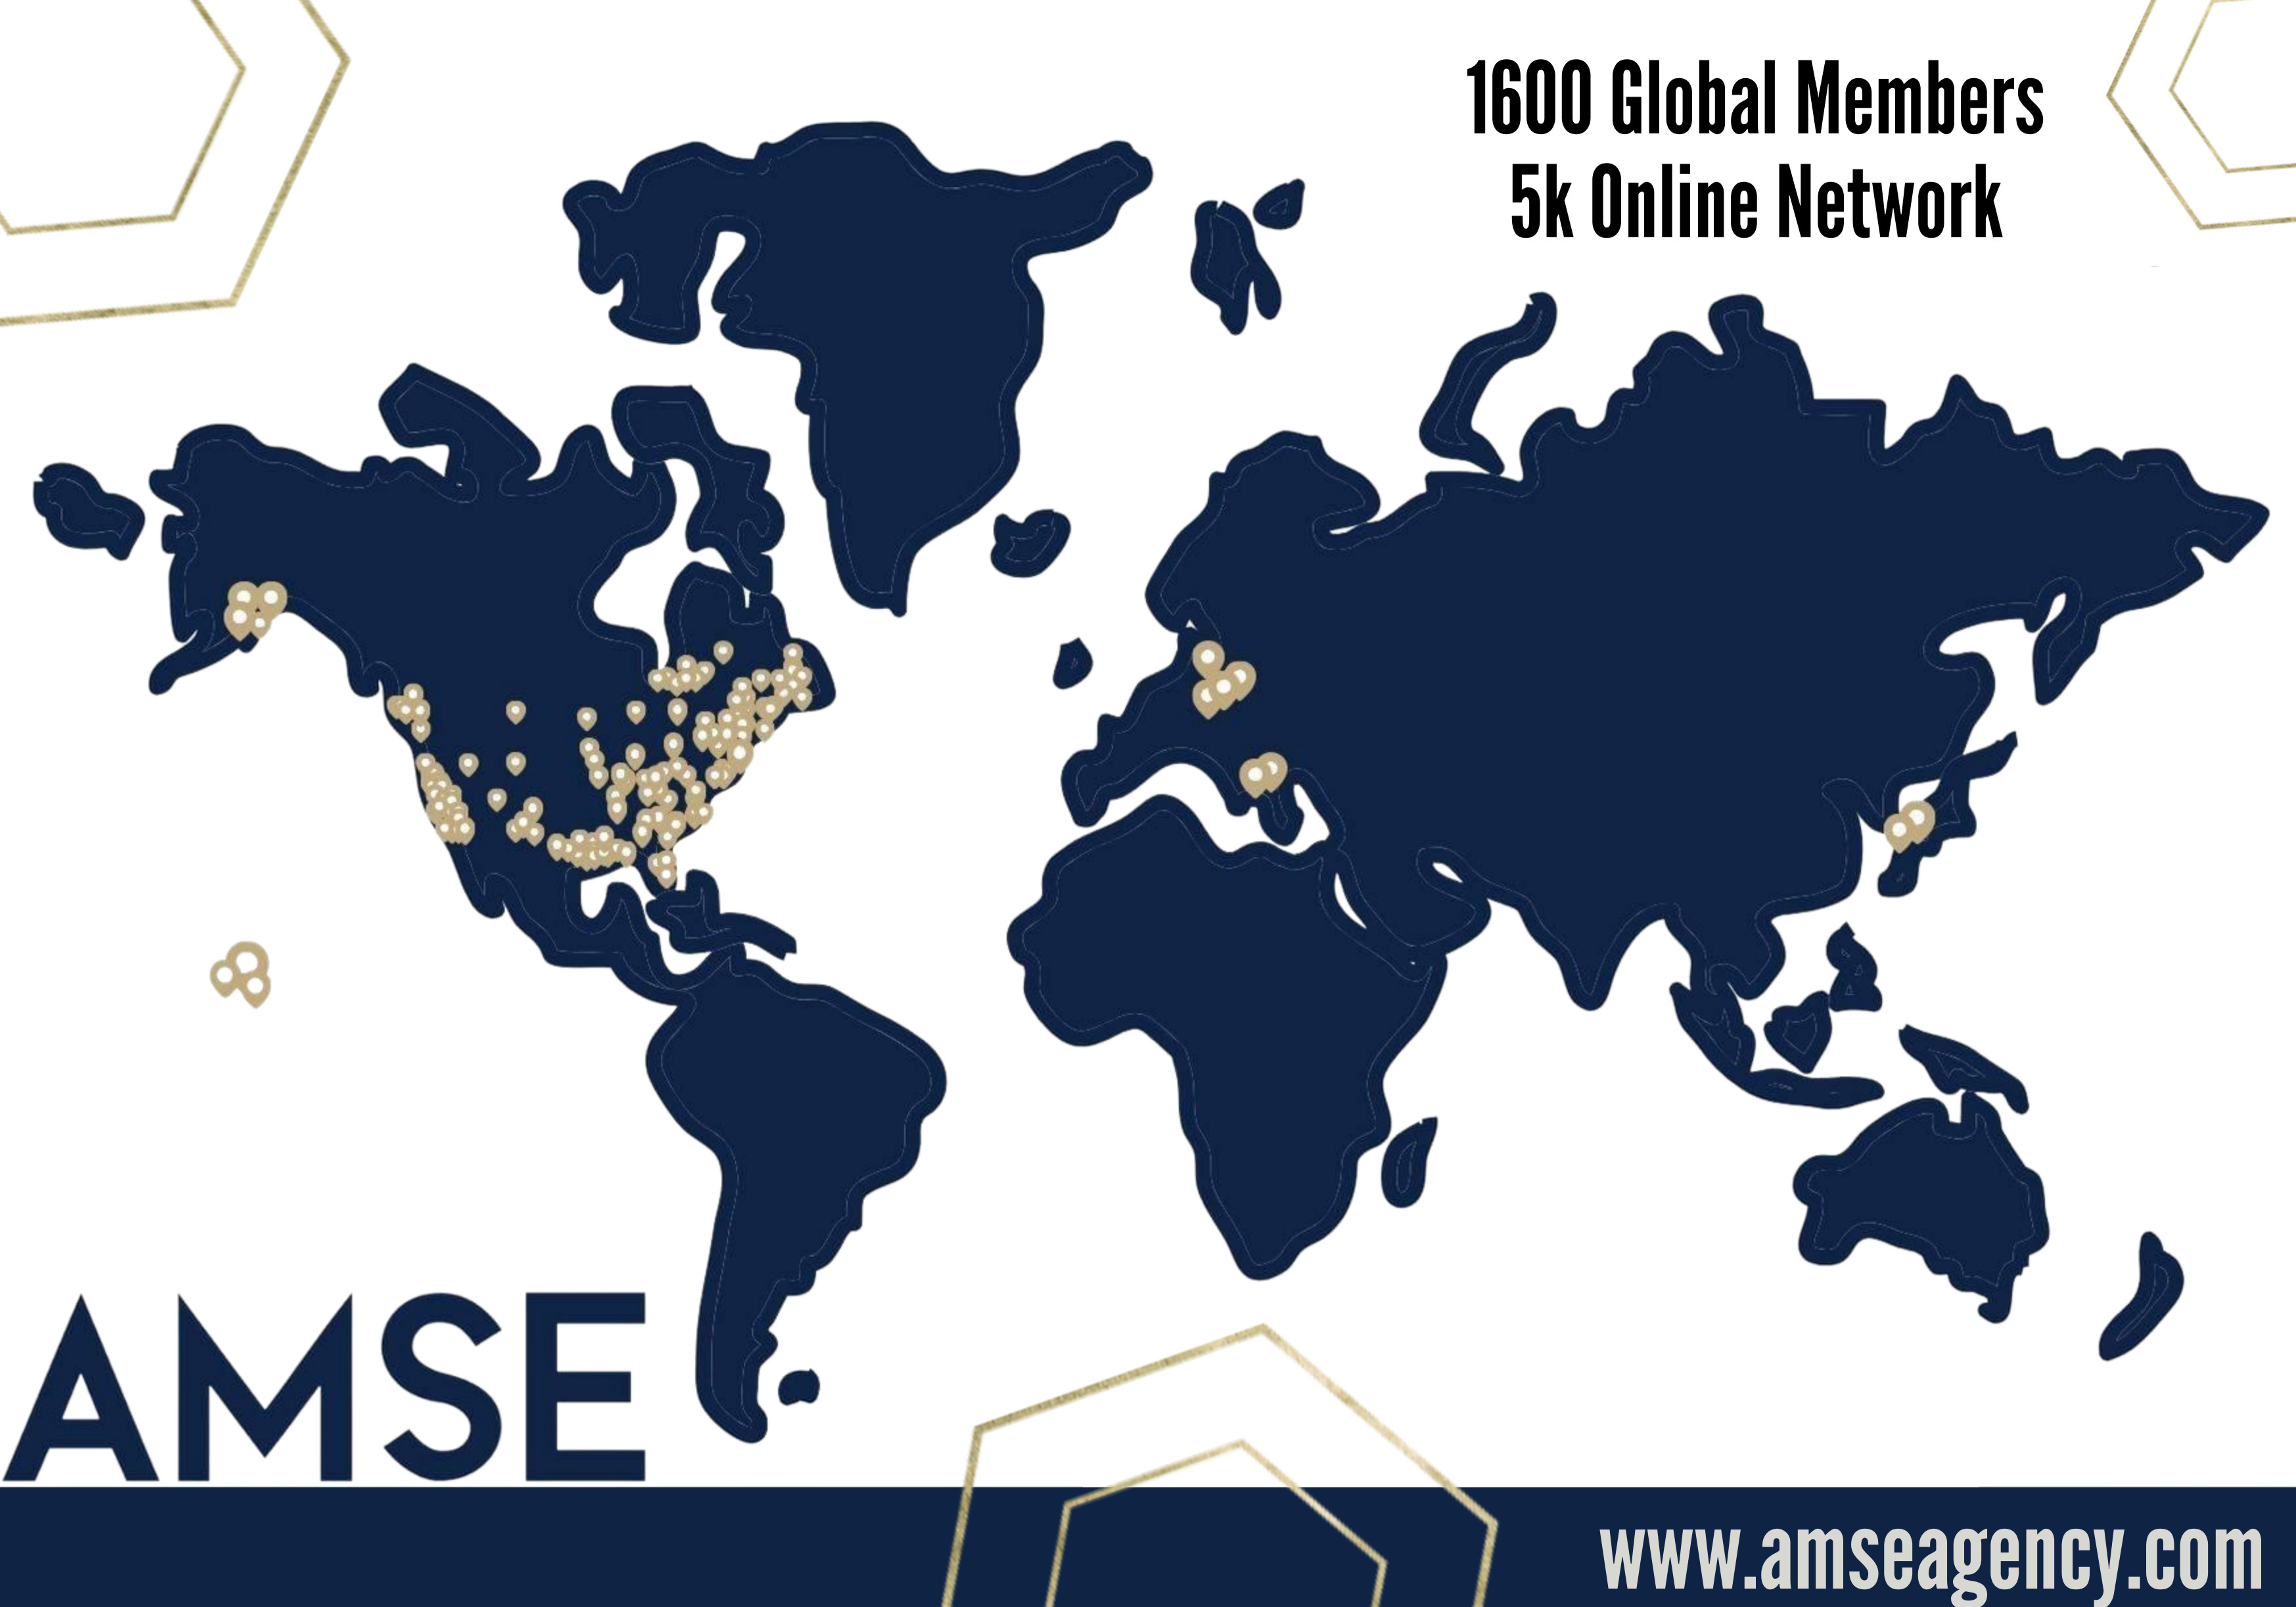 Global Members image for AMSE